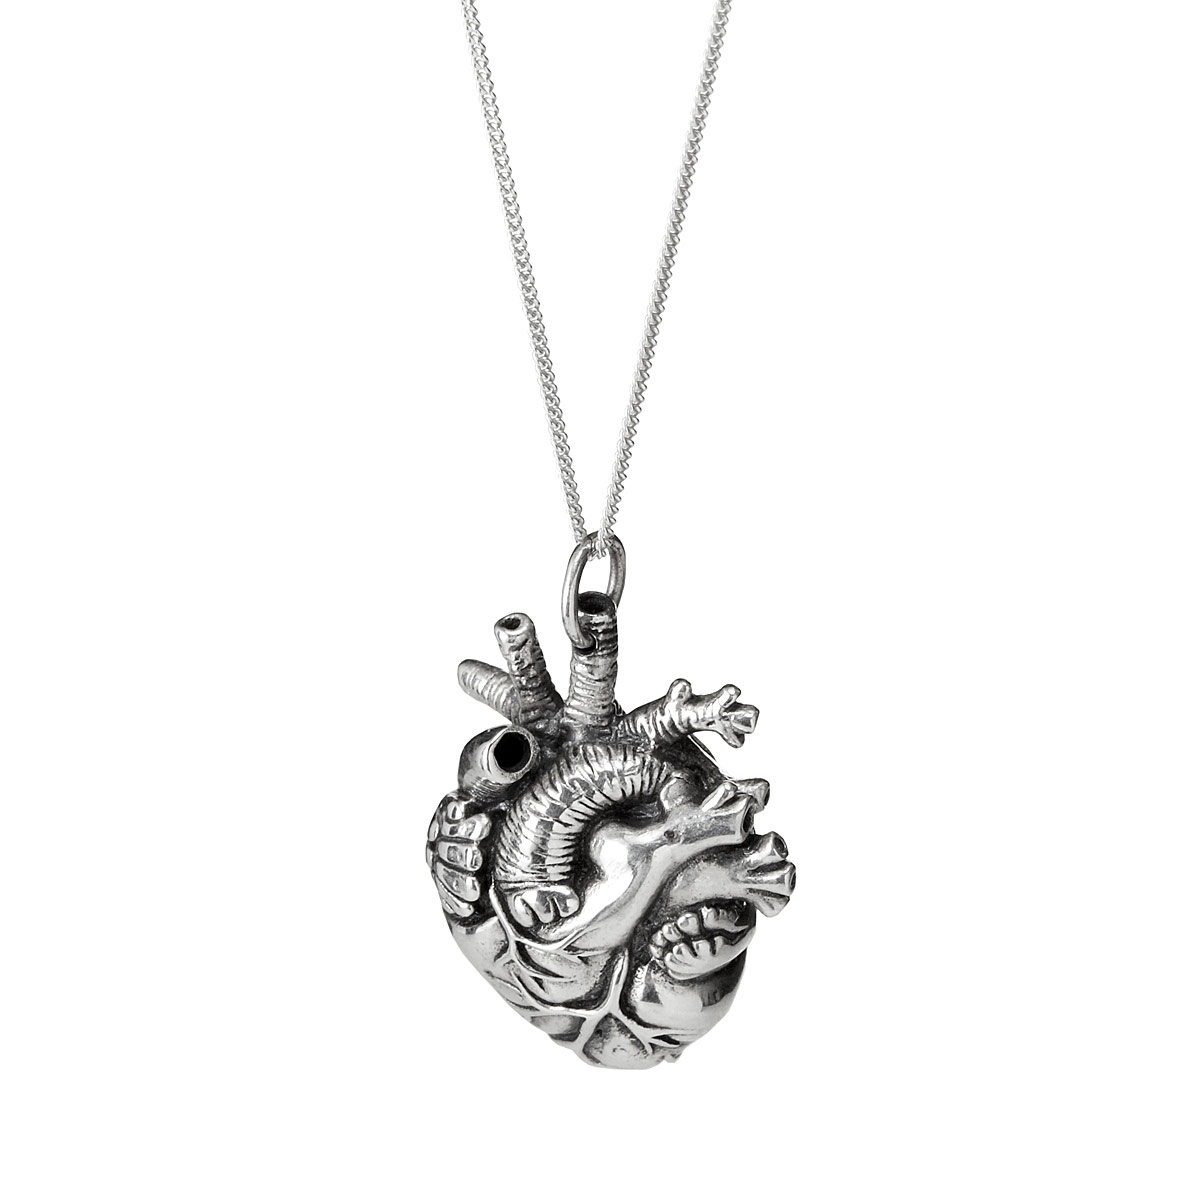 heart pendant necklace anatomical heart pendant 3 thumbnail lbjbxkx